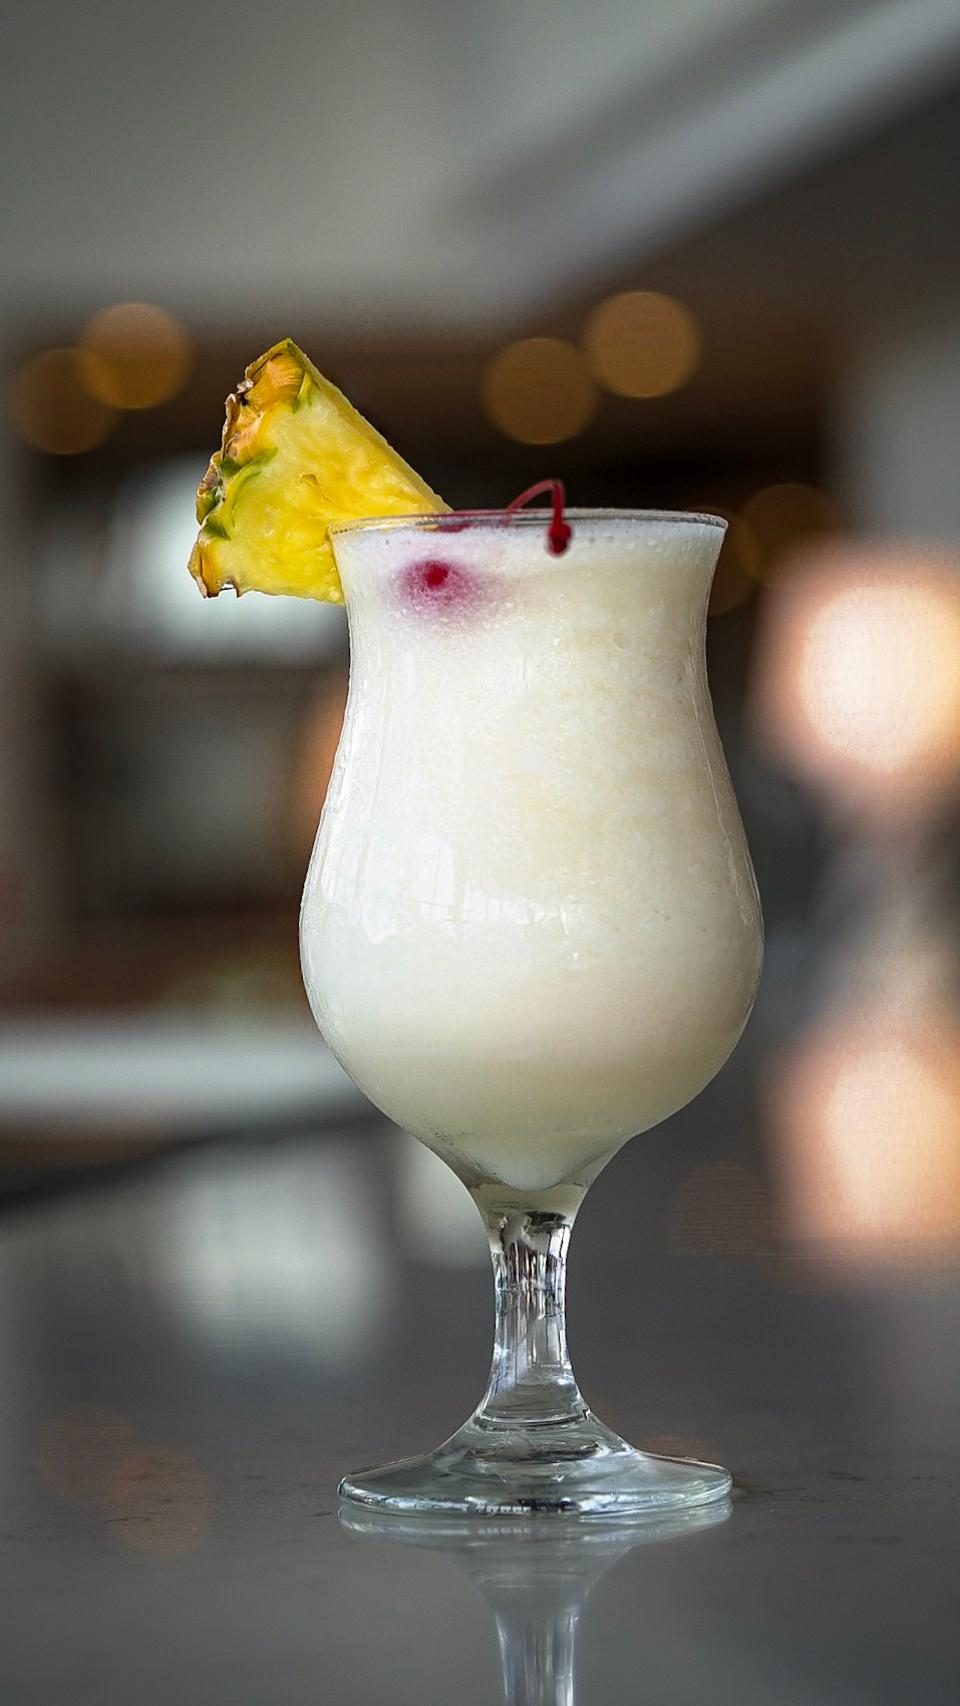 The Original Pina Colada